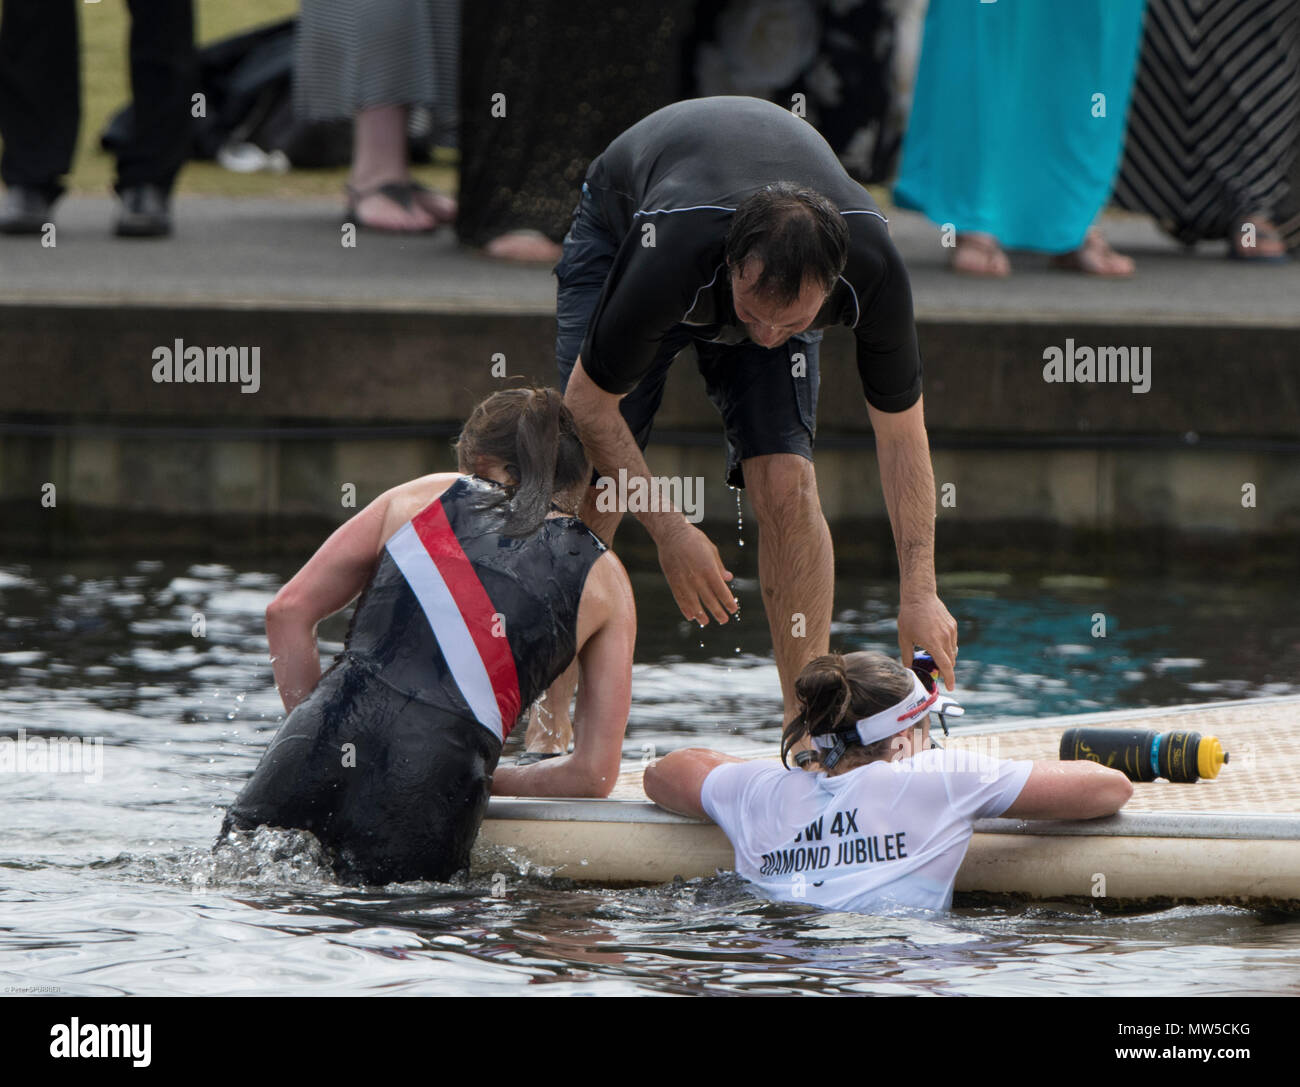 Henley on Thames. United Kingdom.      Sunday,  Coach and crew take a dip in the river Thames after the crew won the final of the Diamond Jubilee Chal - Stock Image